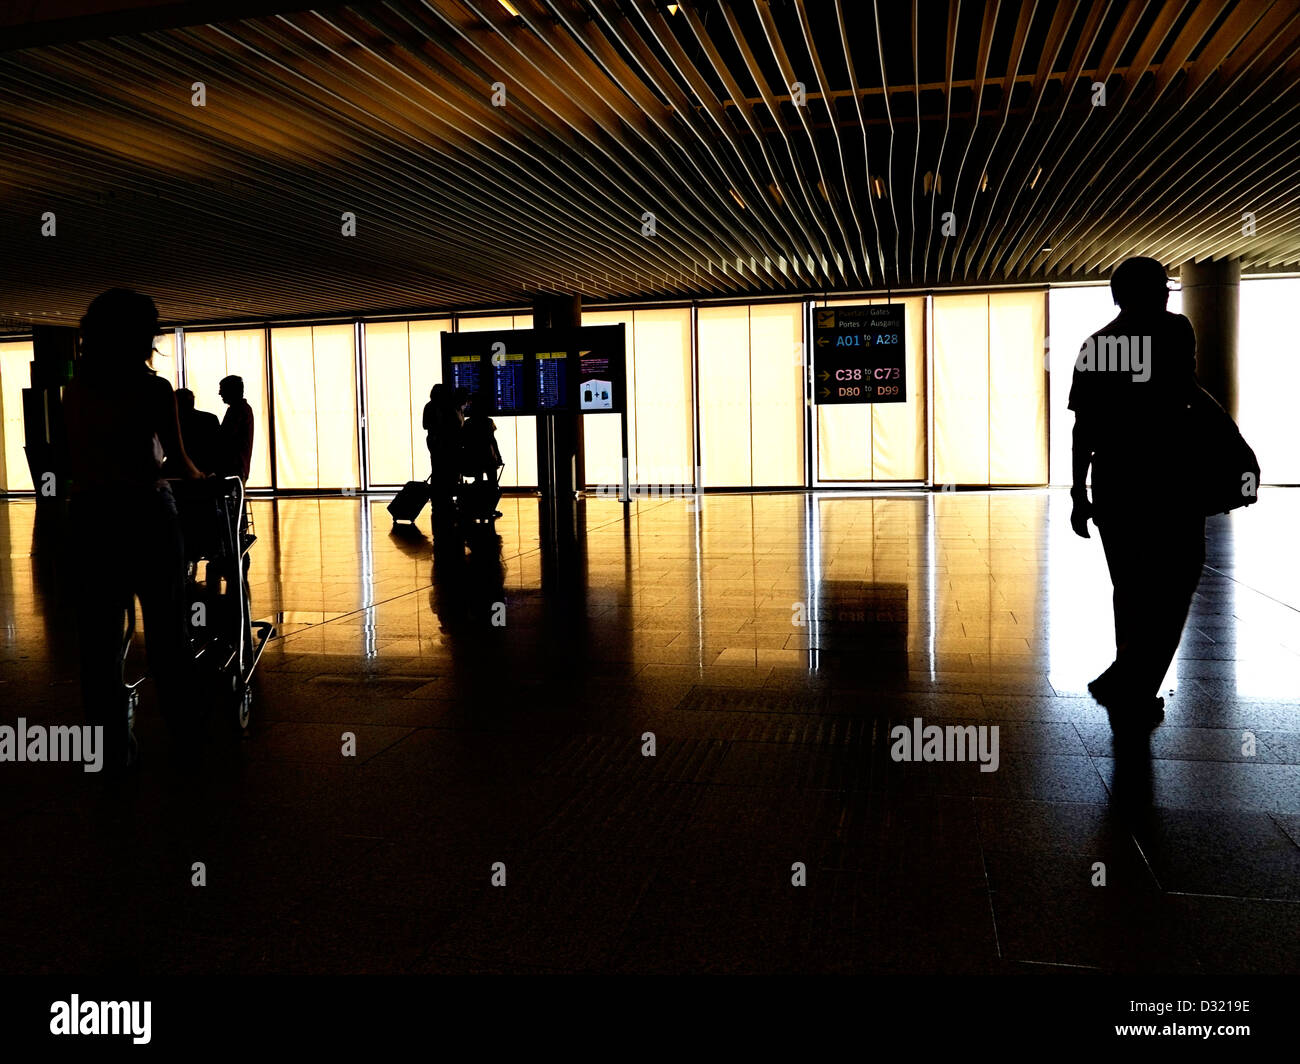 Passengers in an airport on their way to catch flights with screens showing departure information - Stock Image